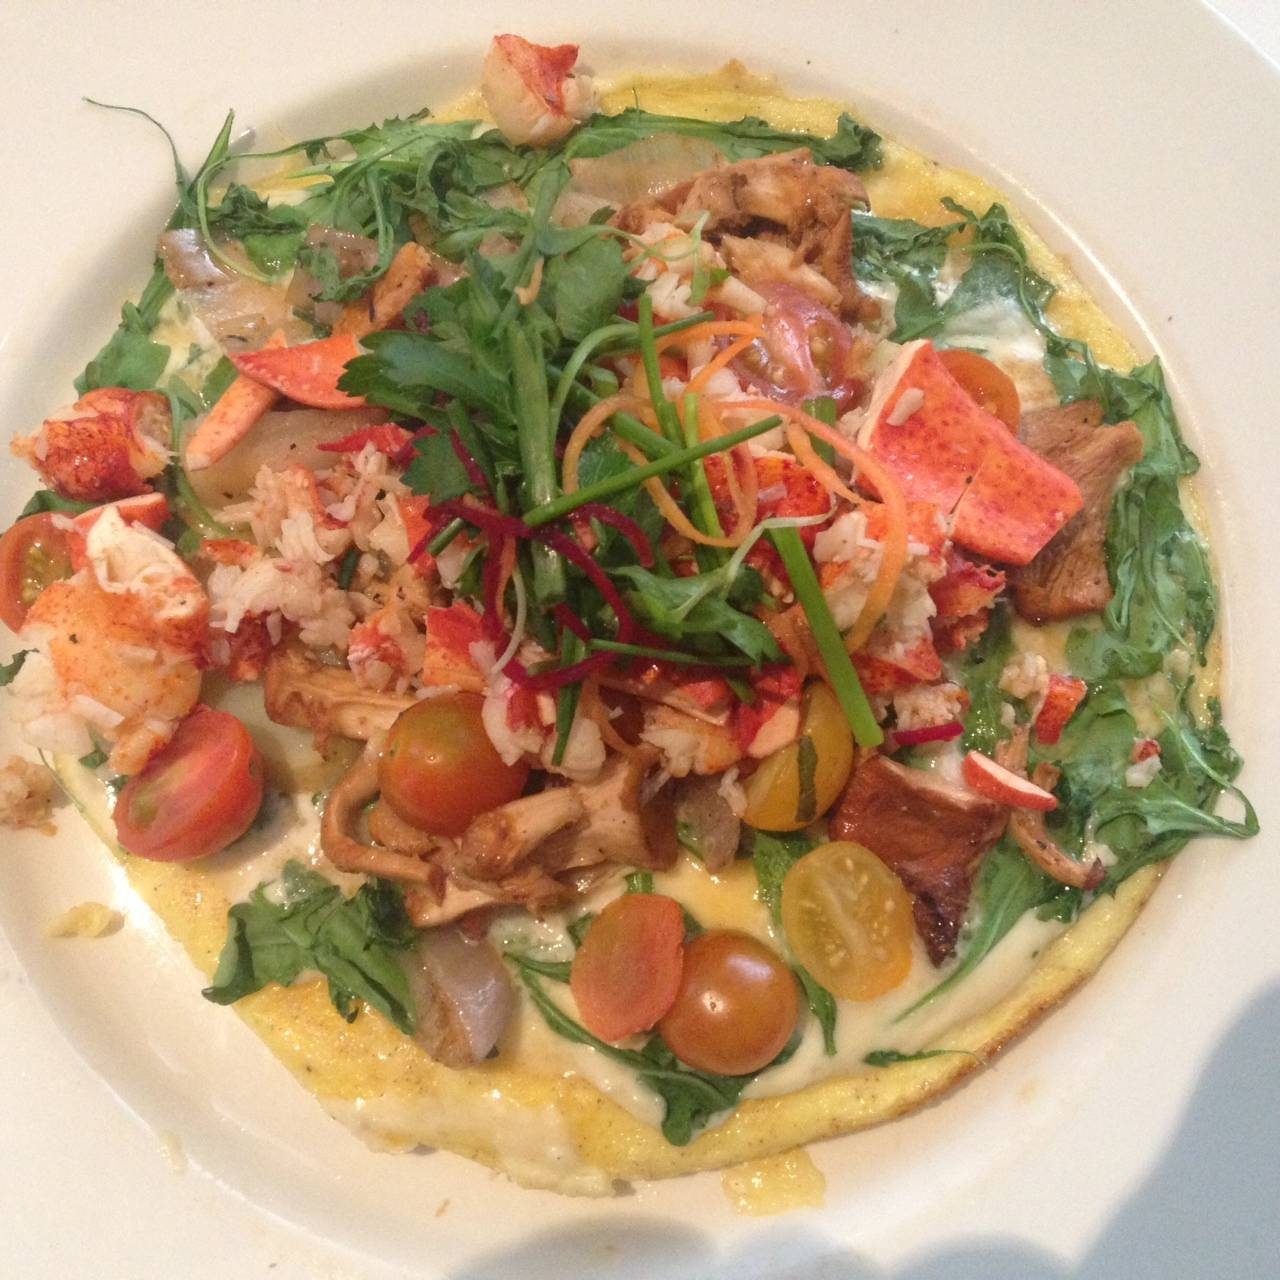 Lobstet and Brie Frittata for brunch at the Commander's Palace in New Orleans LA